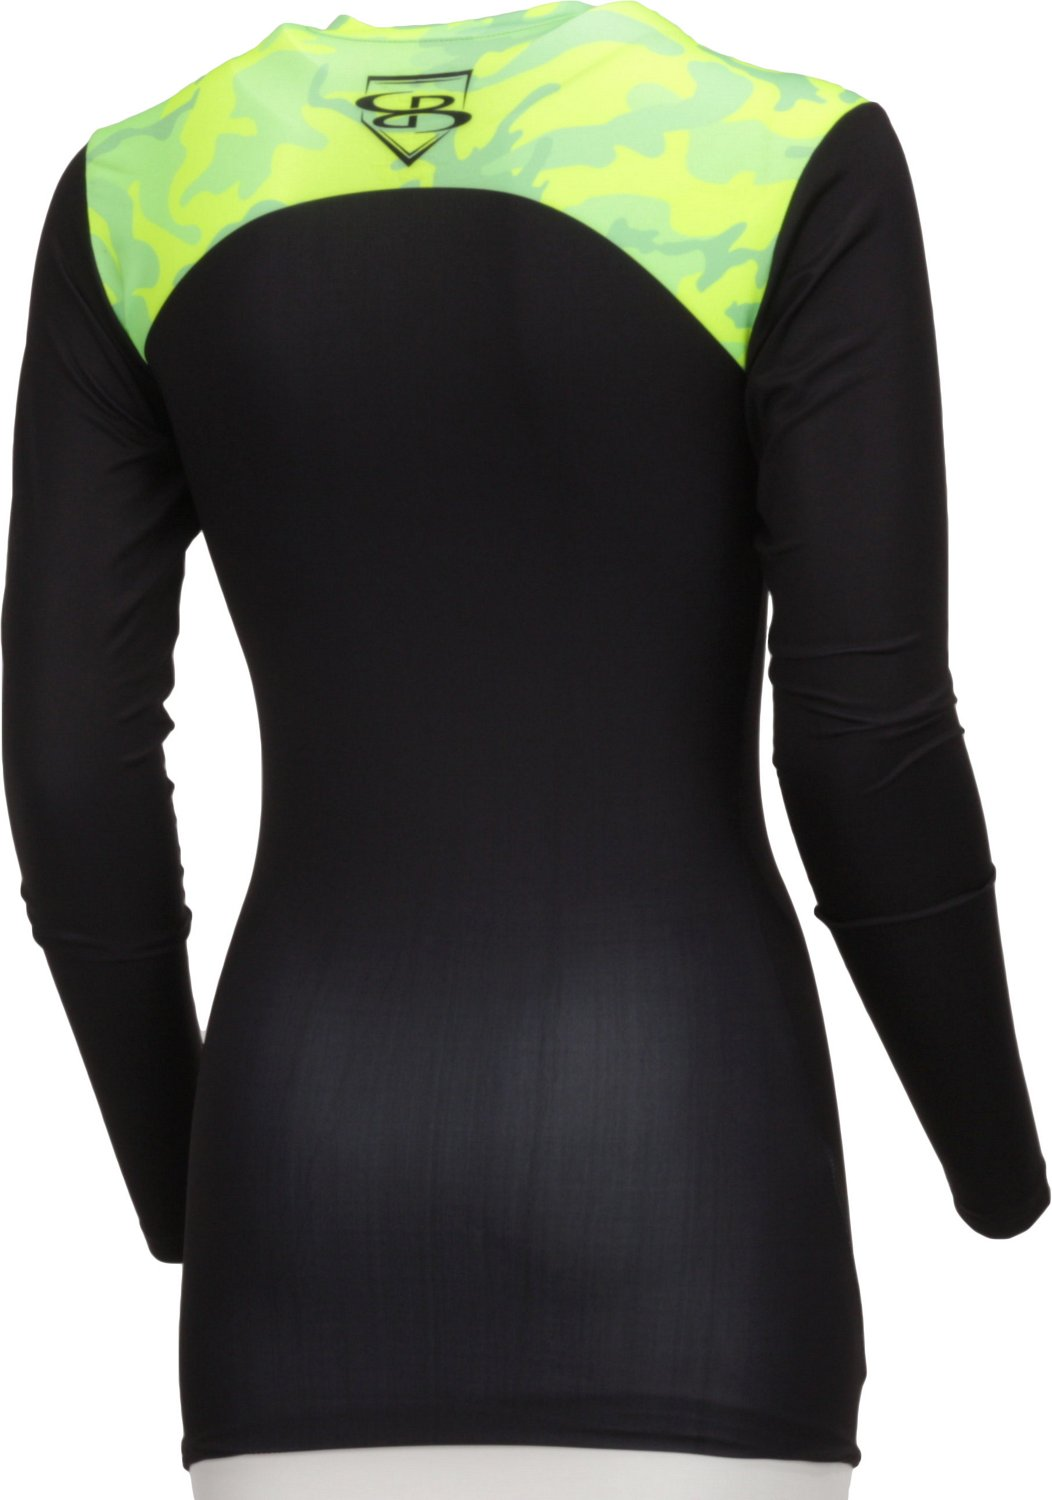 Boombah Women's Long Sleeve Compression Shirt - view number 1